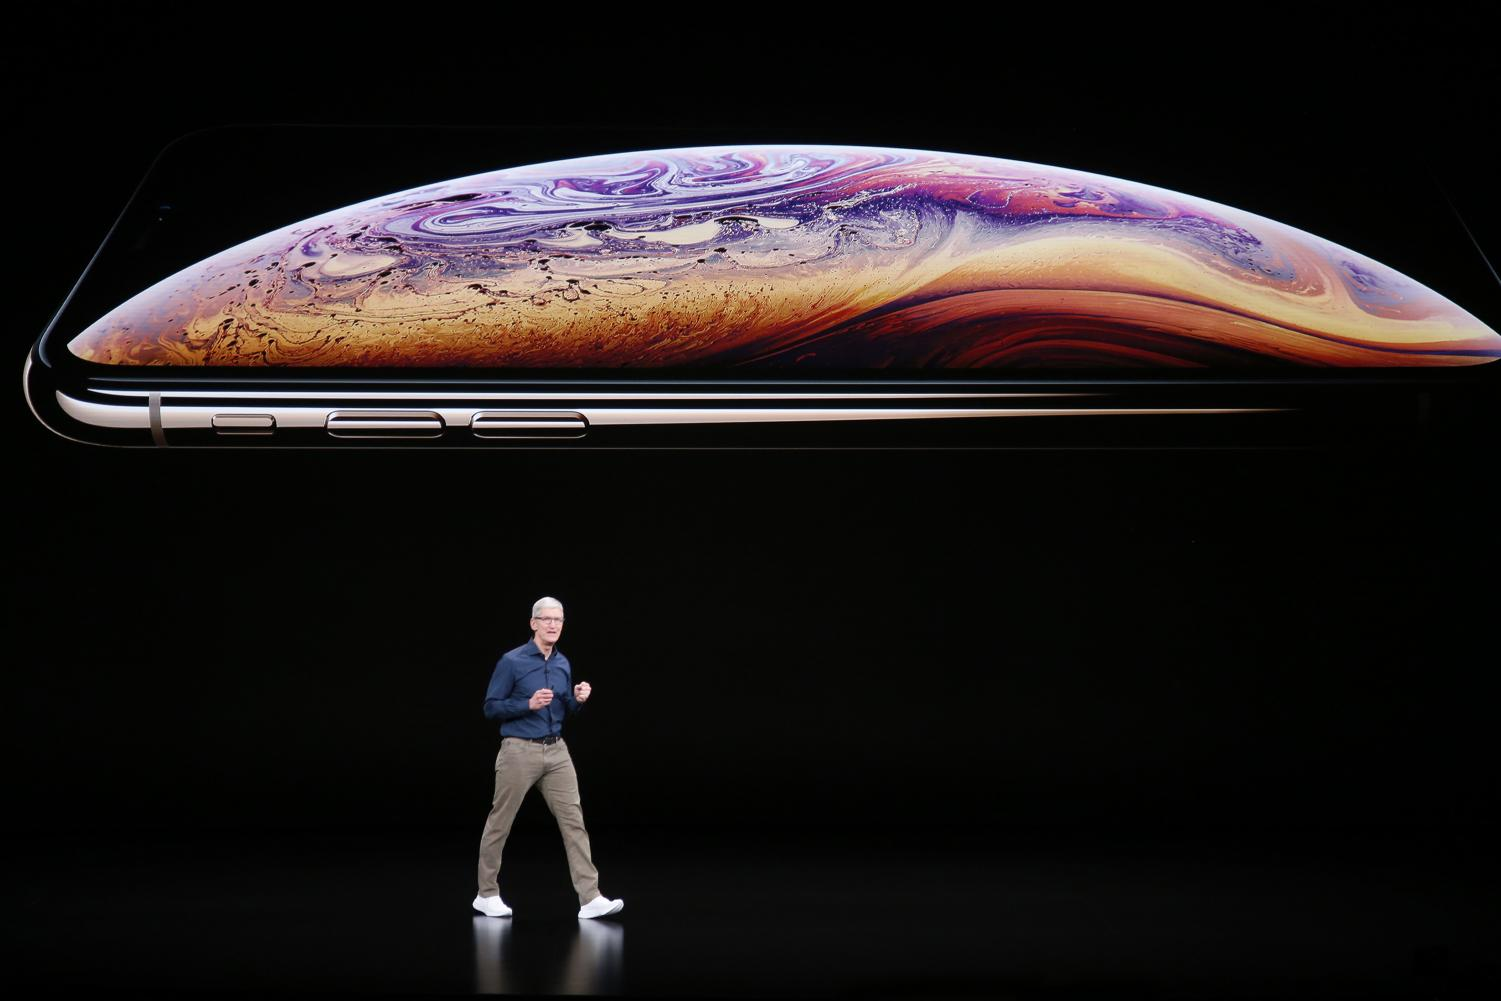 Tim Cook introduces Apple's new smartphone, the iPhone XS, Wednesday, Sept. 12, 2018, at company headquarters in Cupertino, Calif. (Karl Mondon/Bay Area News Group/TNS)